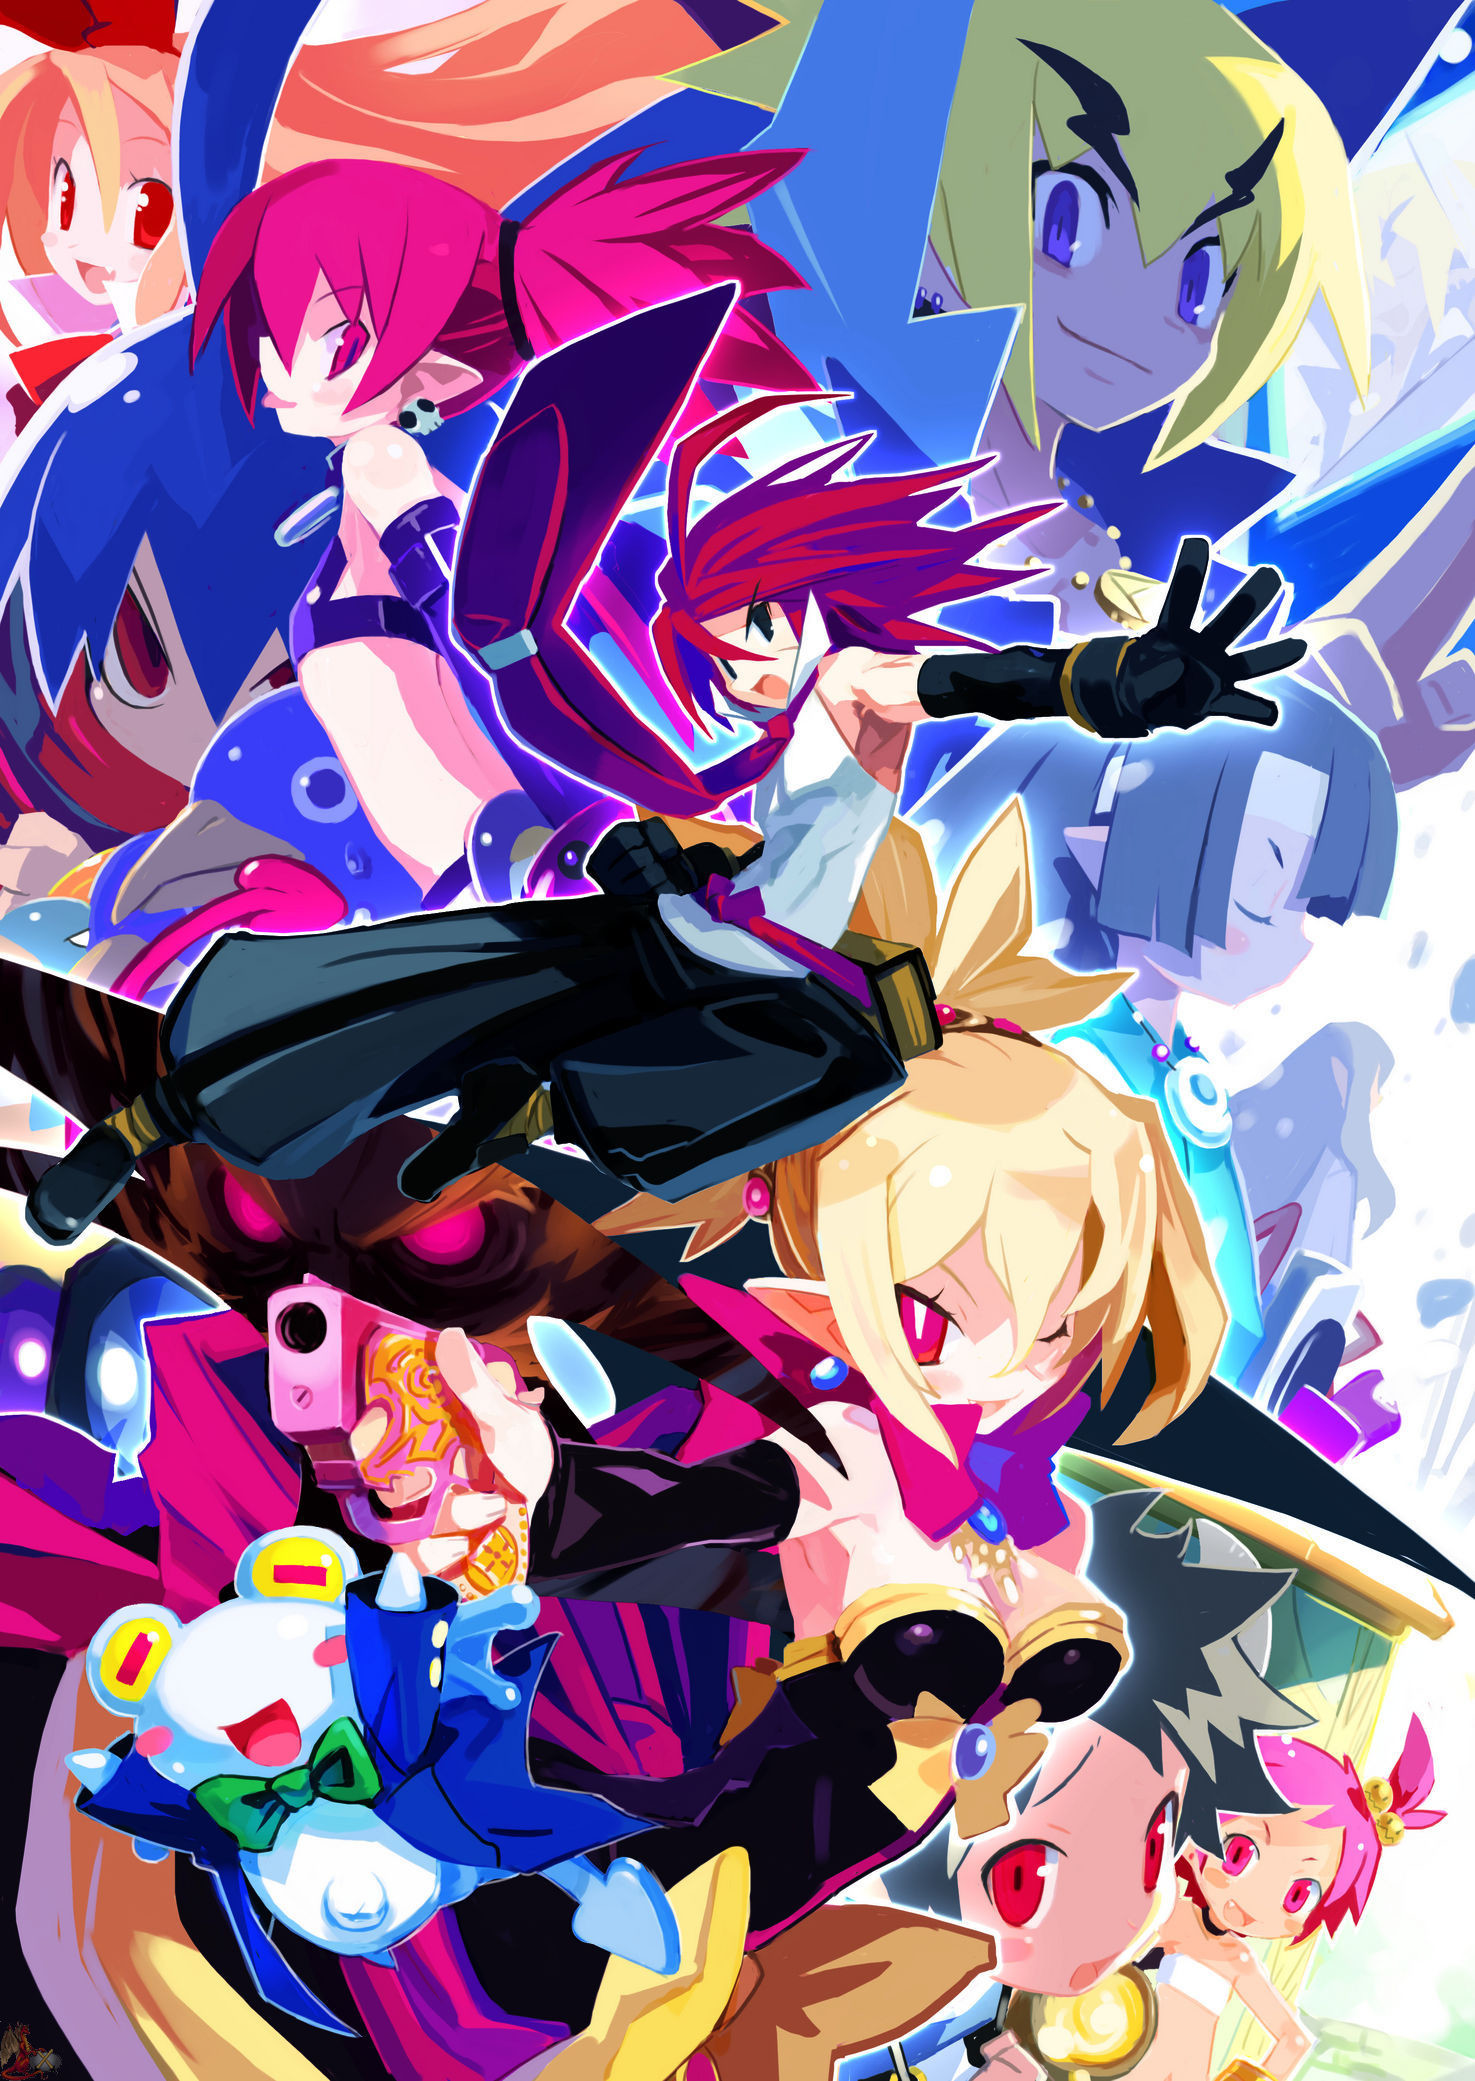 1475x2081 axel_(disgaea) bat_wings blonde_hair demon_girl detached_sleeves disgaea  disgaea_2 elbow_gloves etna flat_chest flonne flonne_(